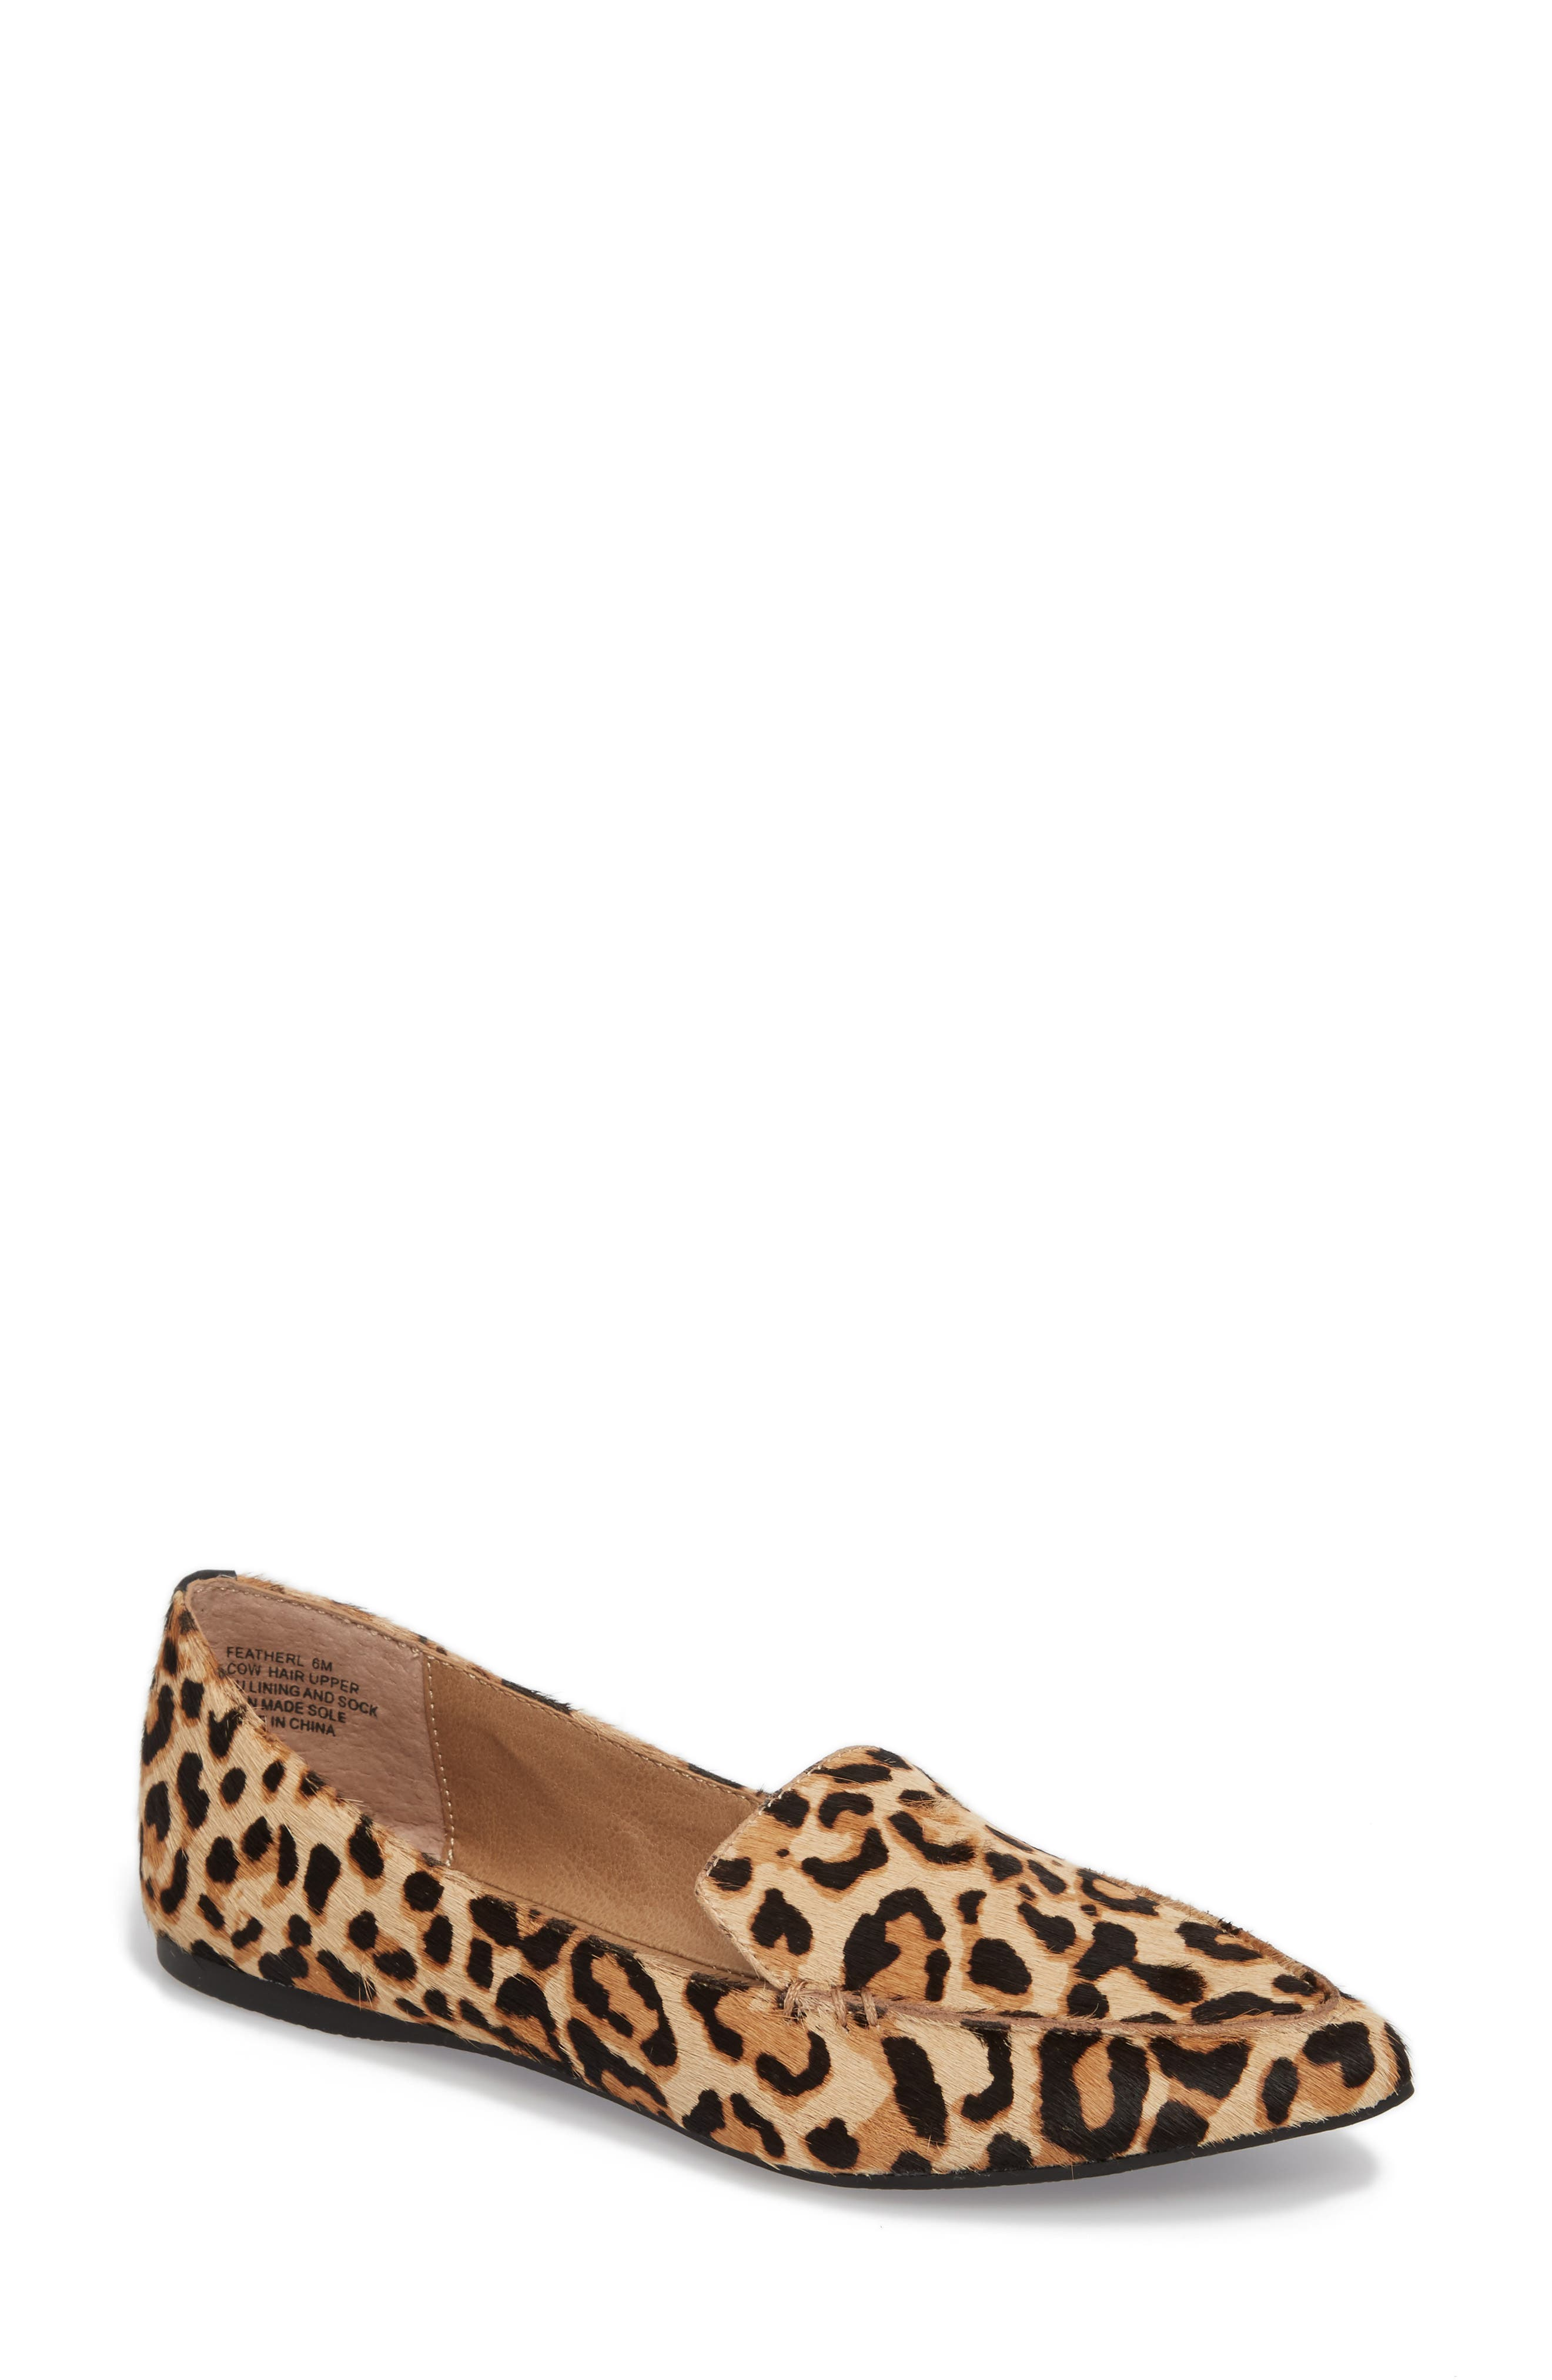 STEVE MADDEN Feather-L Genuine Calf Hair Loafer Flat, Main, color, LEOPARD